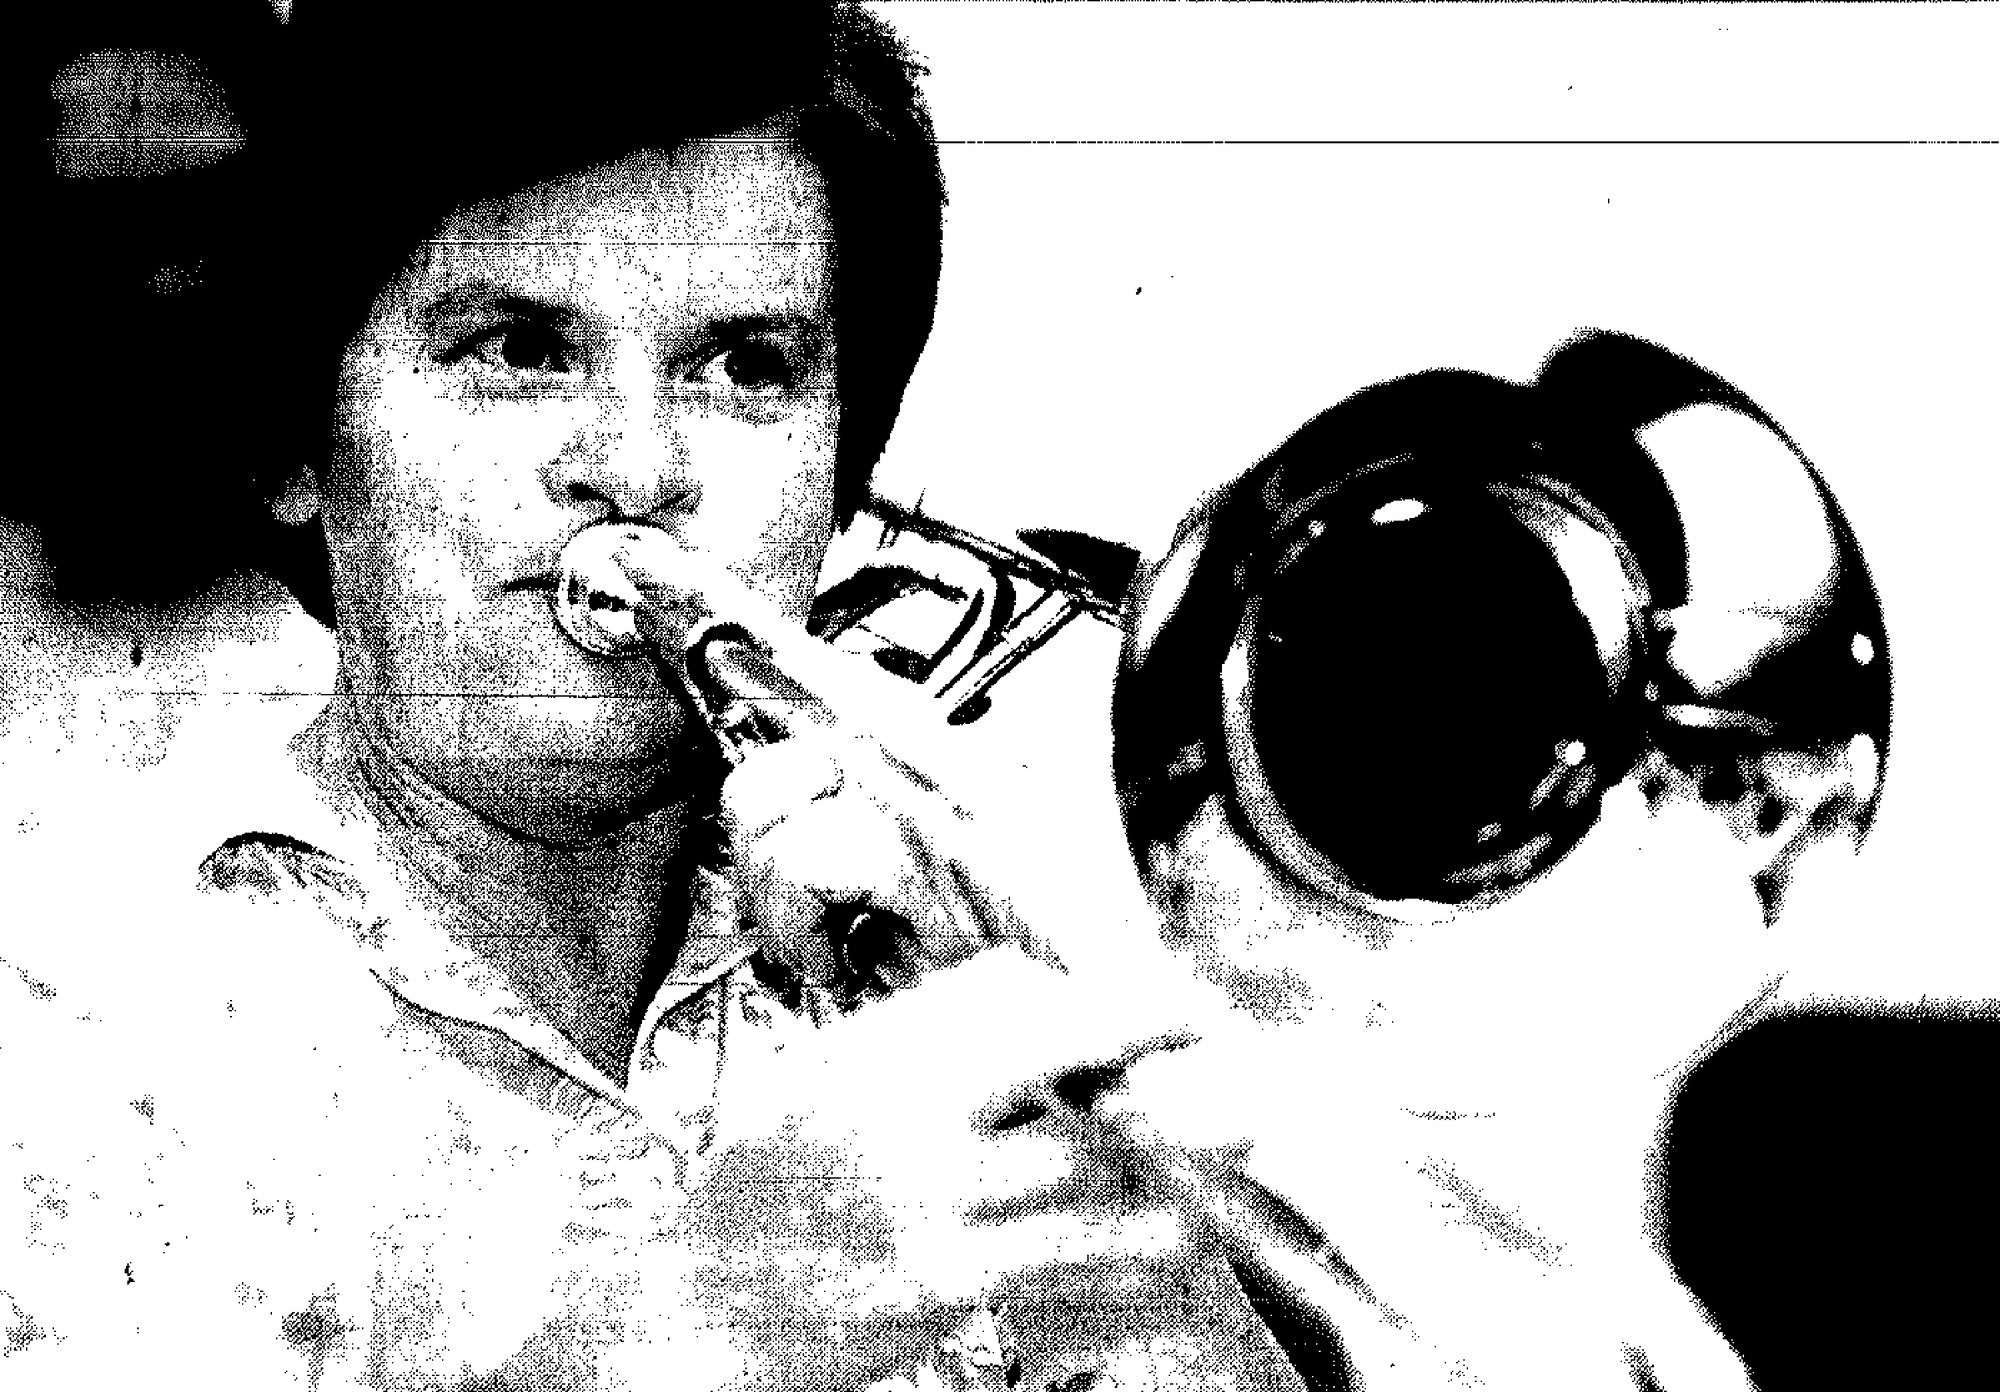 1994 - Kay Stuckey, a member of the Community Concert Band Jazz Ensemble, blows on the trombone during a rehearsal for an SPCA Musicale.